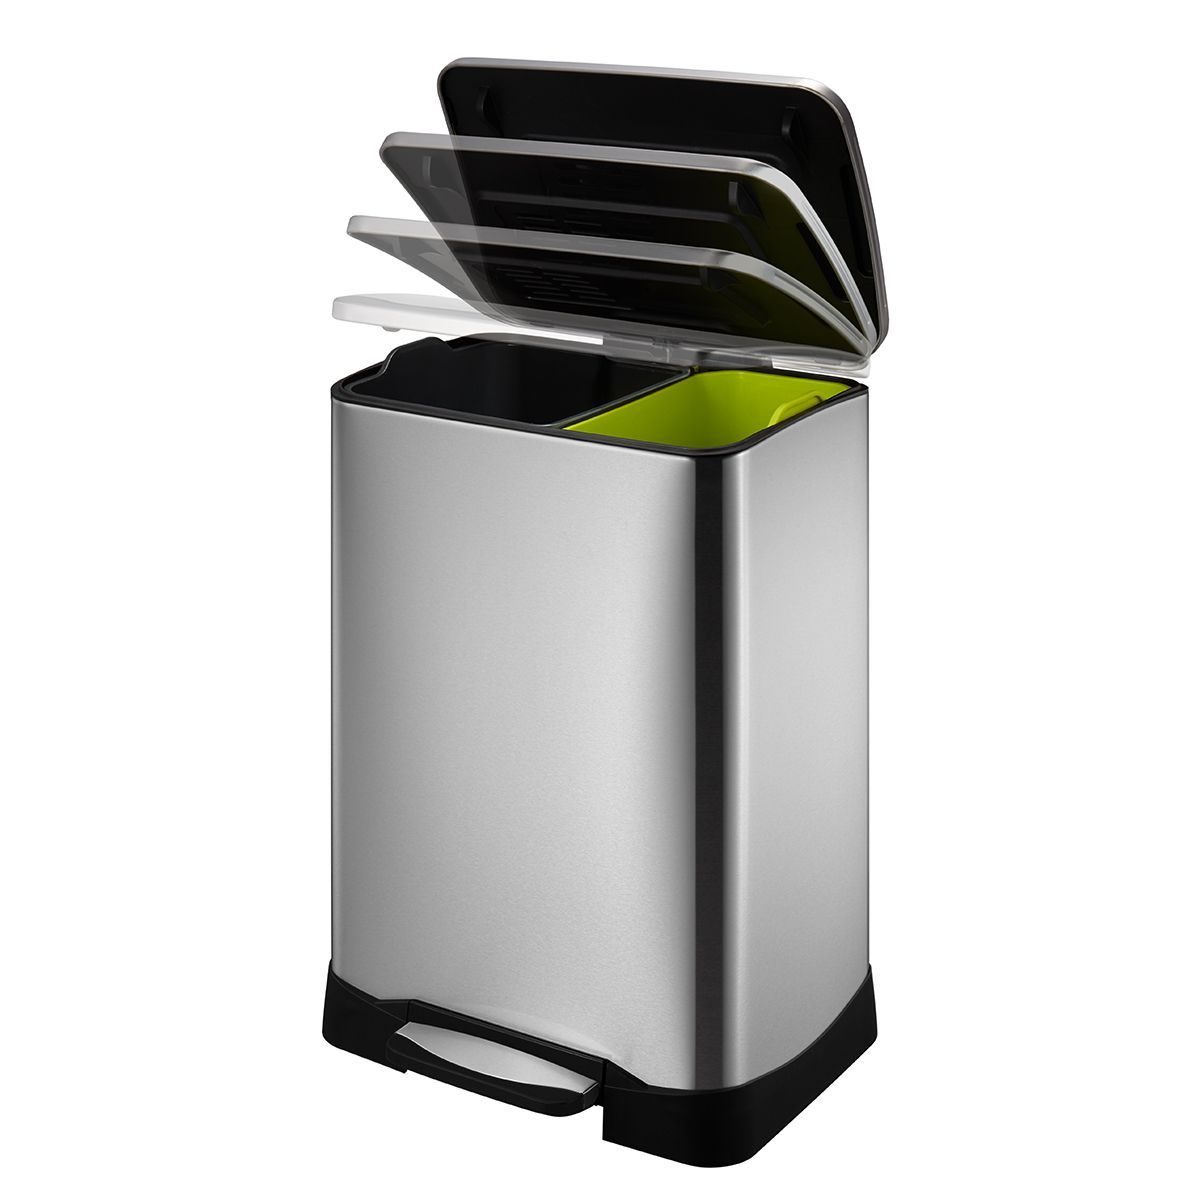 Neocube 50 Liter Dual Compartment 28 Liter And 18 Liter Stainless Steel Recycle And Trash Bin